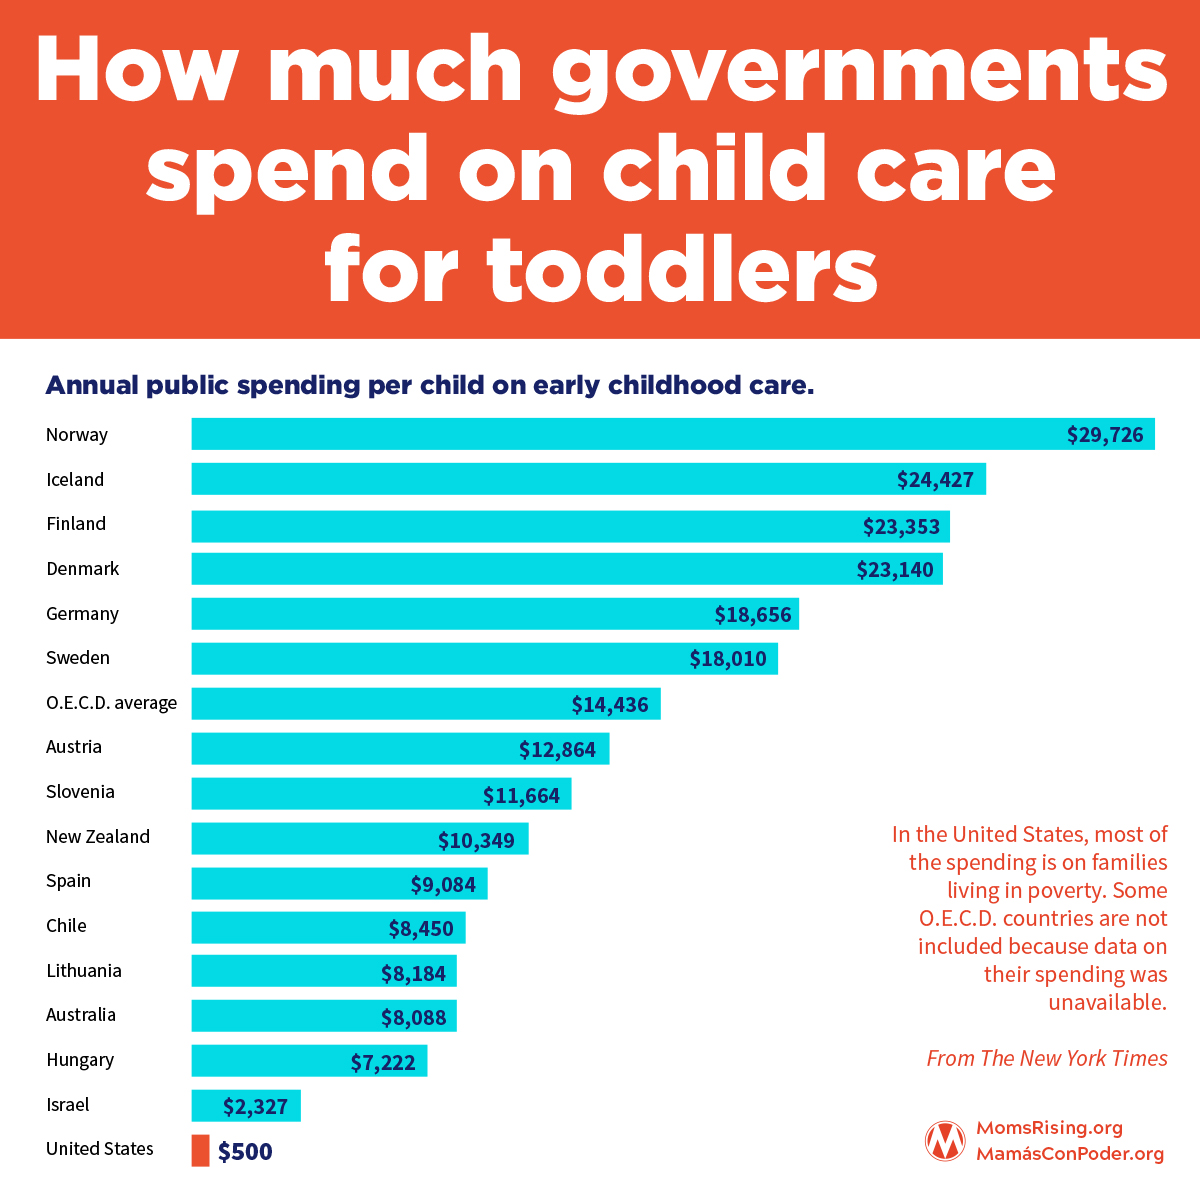 How much governments spend on childcare for toddlers